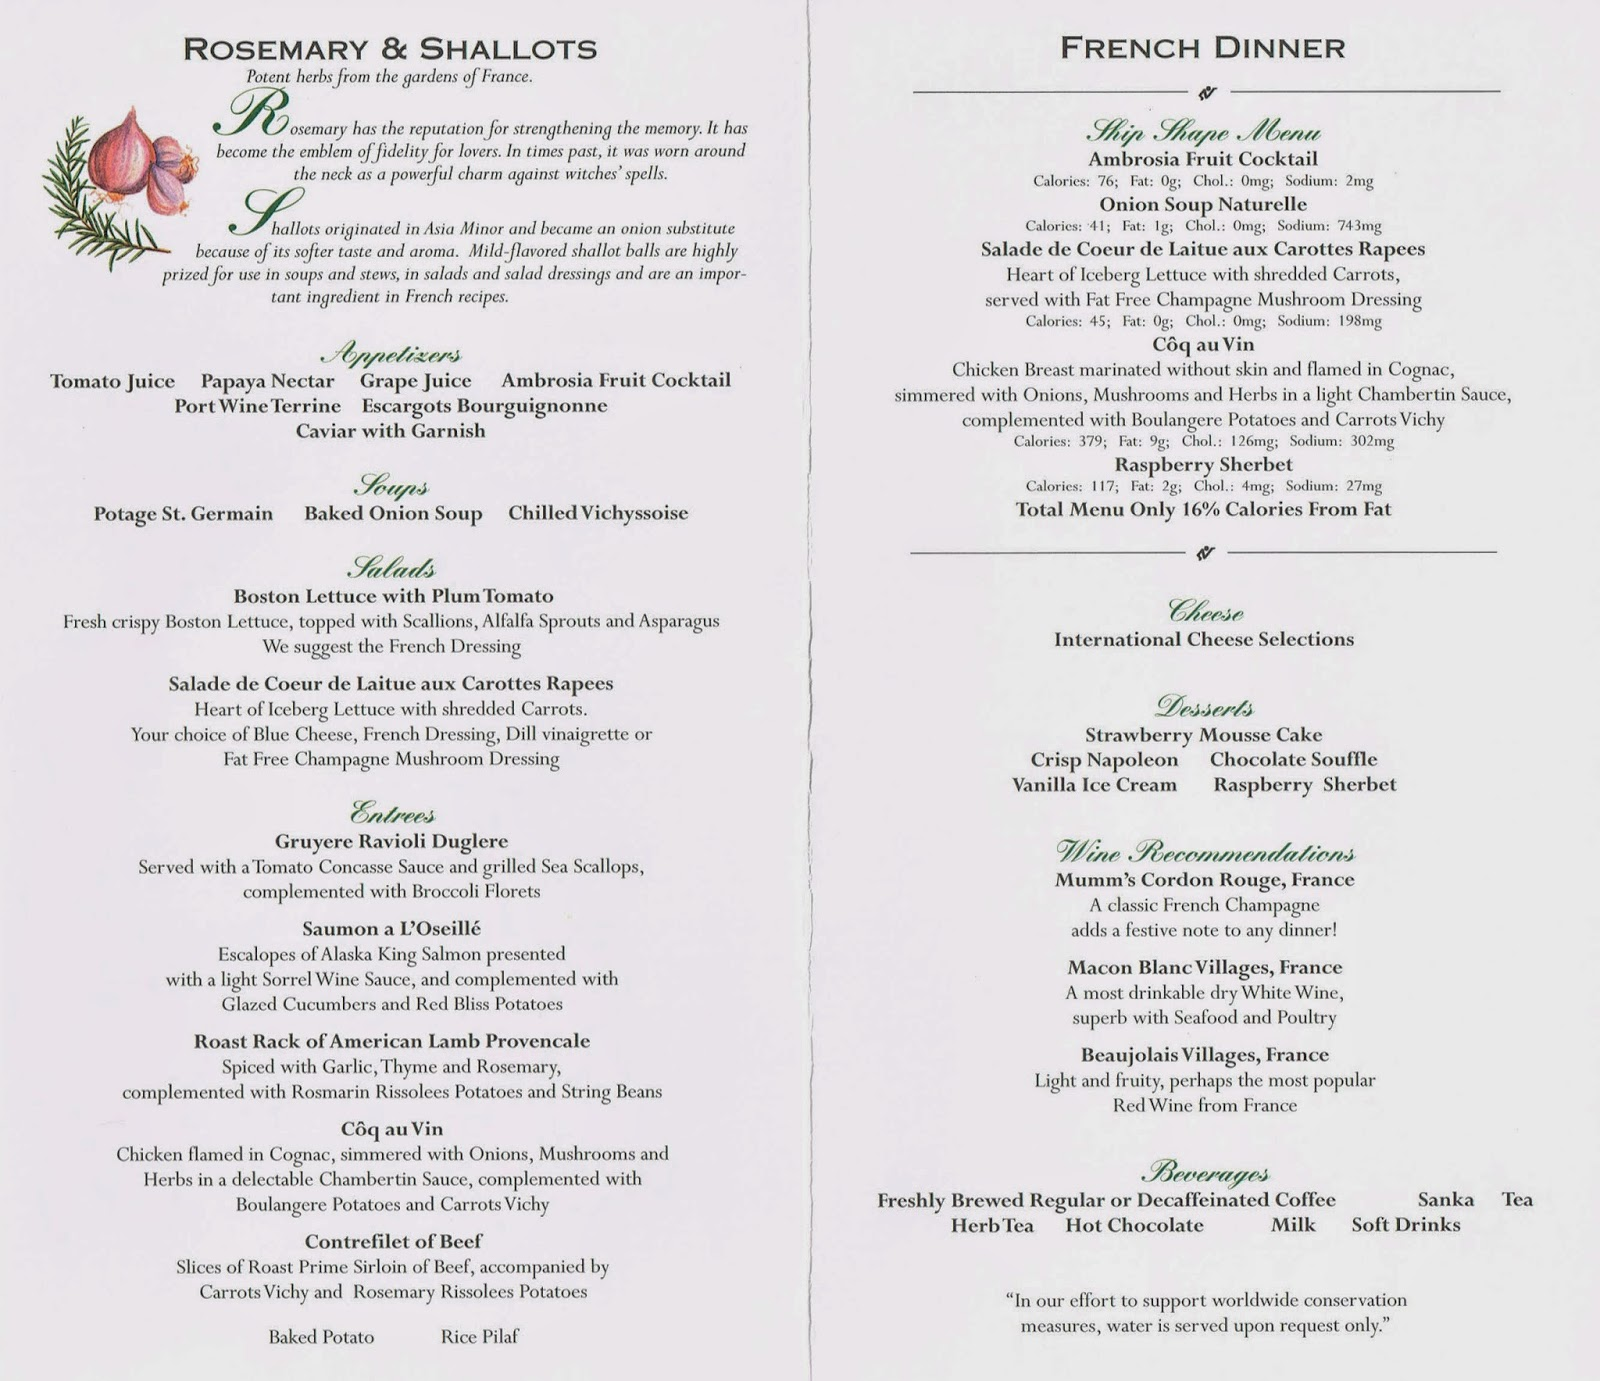 Sovereign of the Seas menu